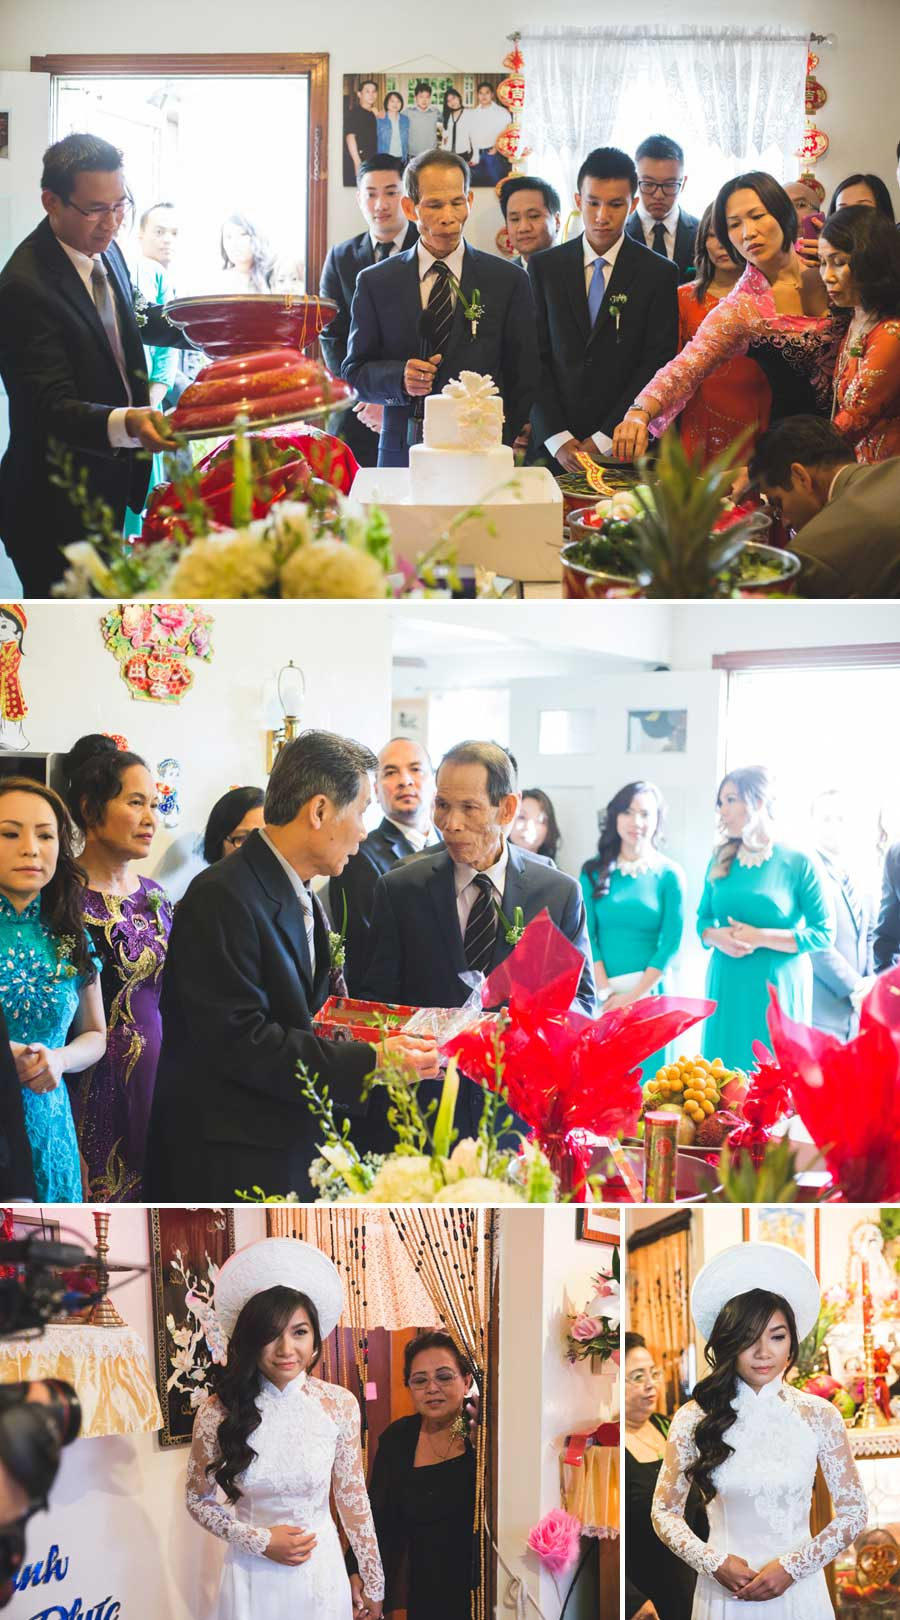 pittsburgh-wedding-photographer-at-university-club-vietnamese-tea-ceremony-wedding-oakland-08